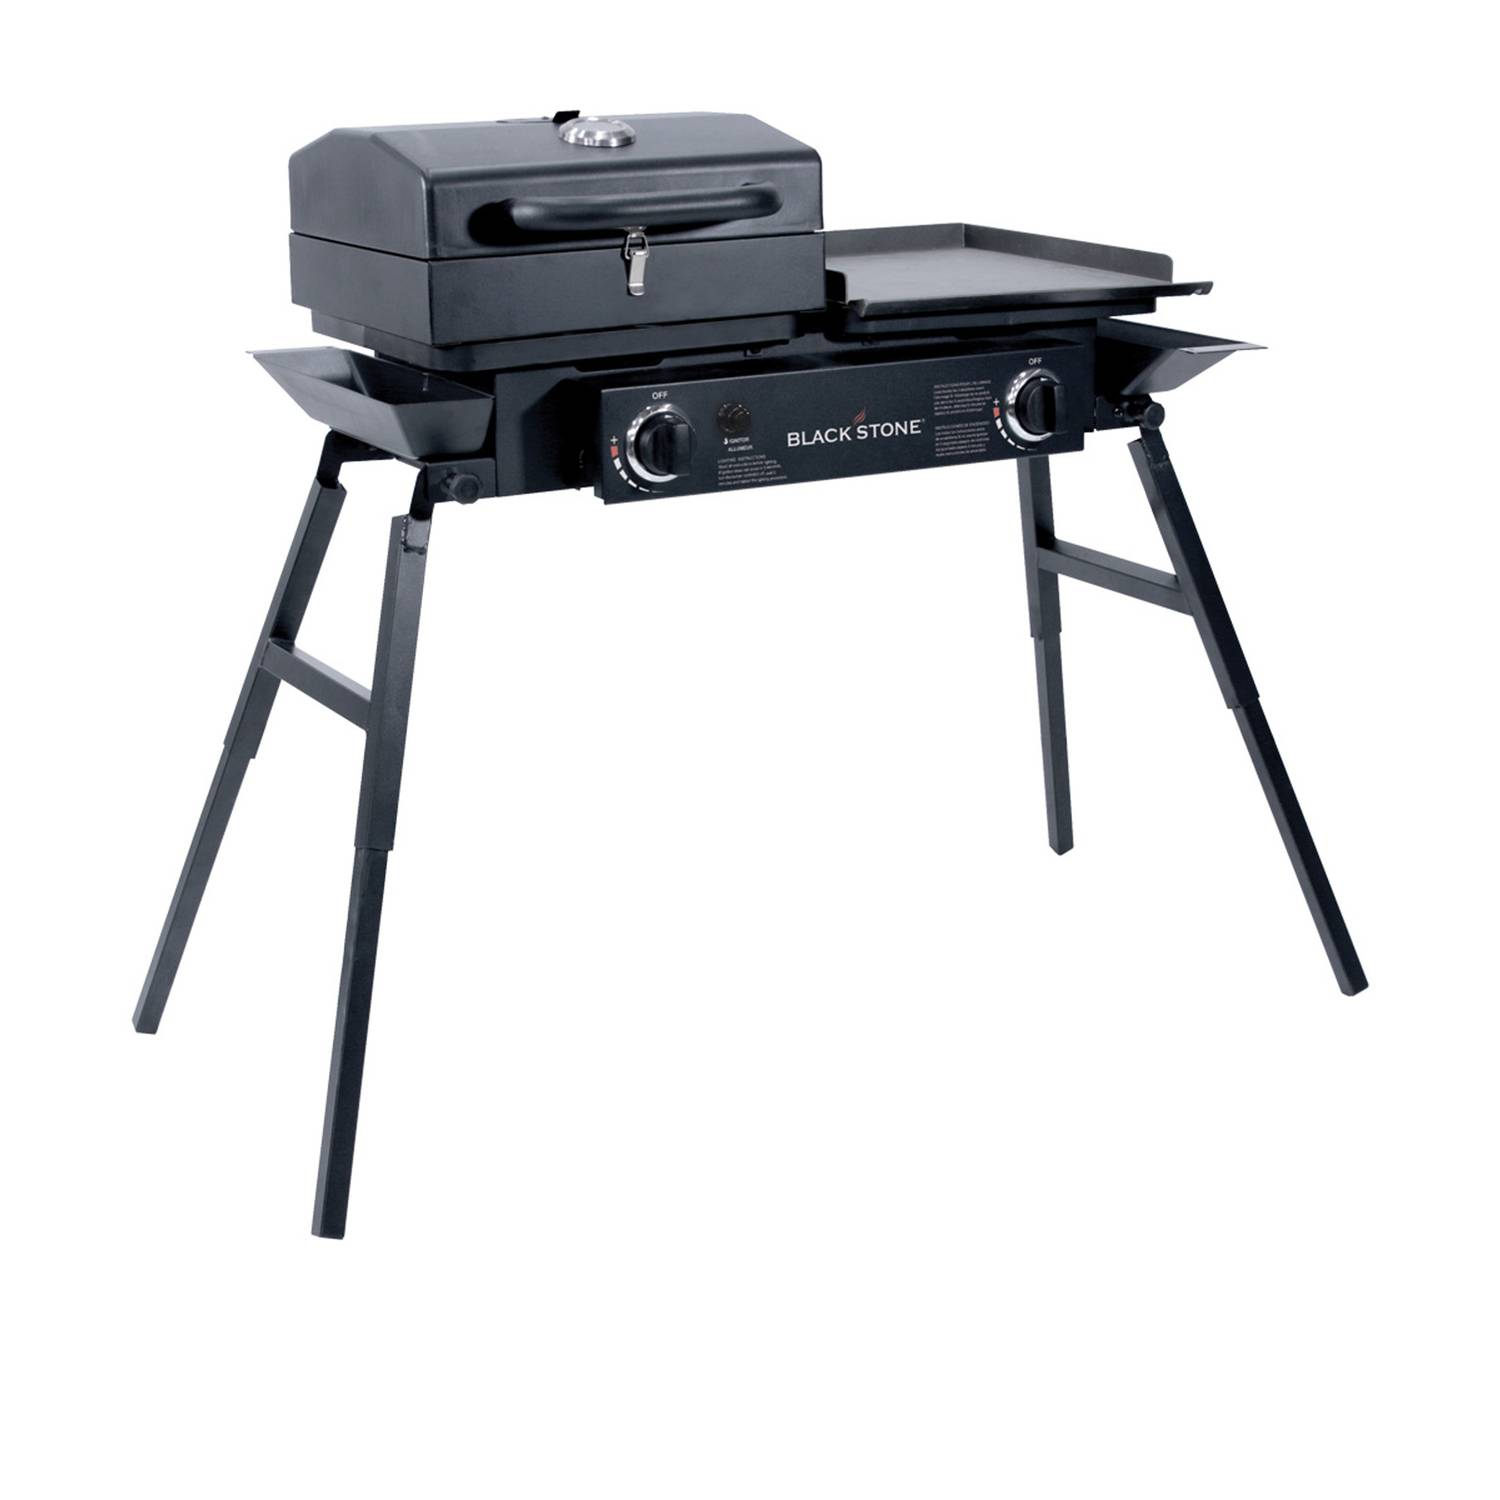 Blackstone Tailgater Combo 2 burners Liquid Propane Outdoor Griddle Black